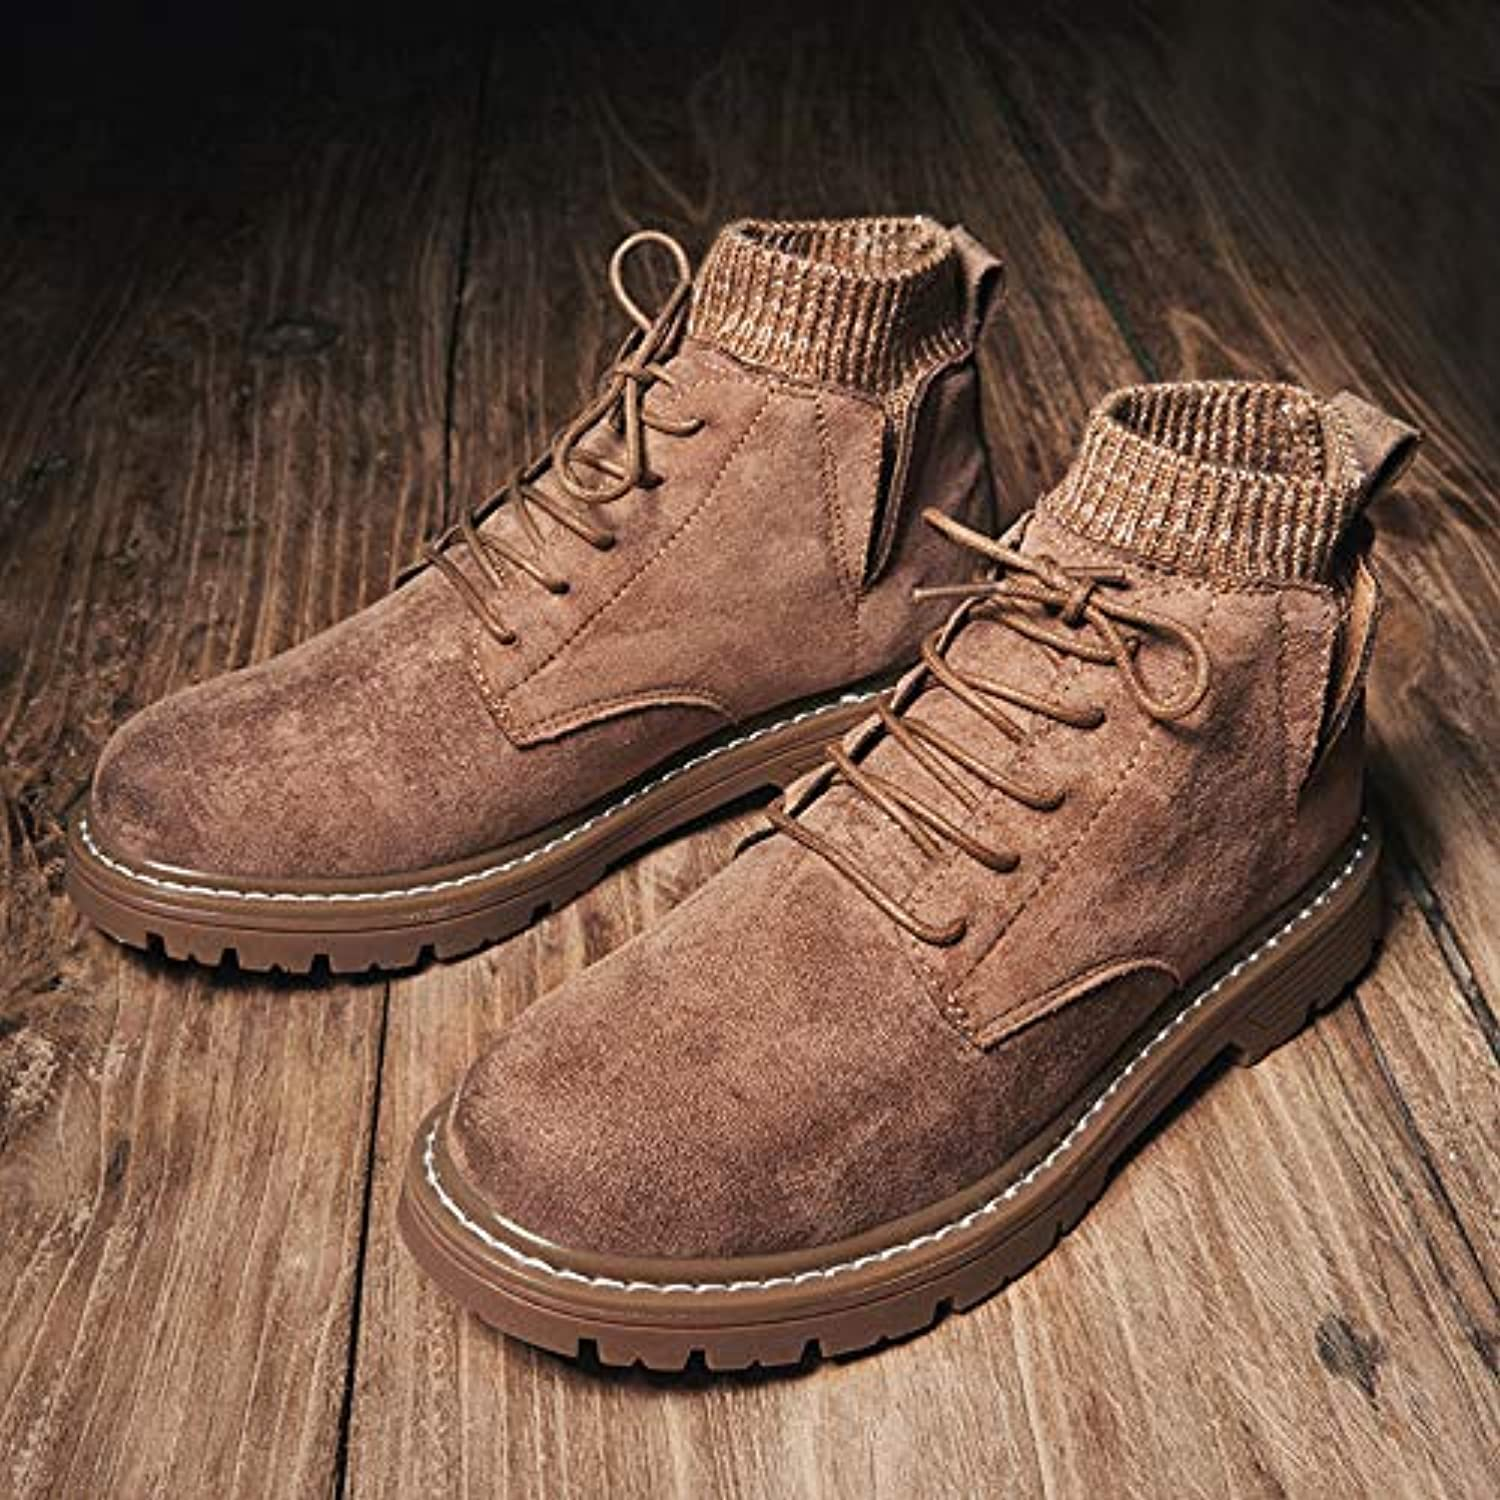 LOVDRAM Boots Men's Winter Martin Boots Leather Fashion Men'S shoes To Keep Warm High shoes Wild Work shoes Casual shoes